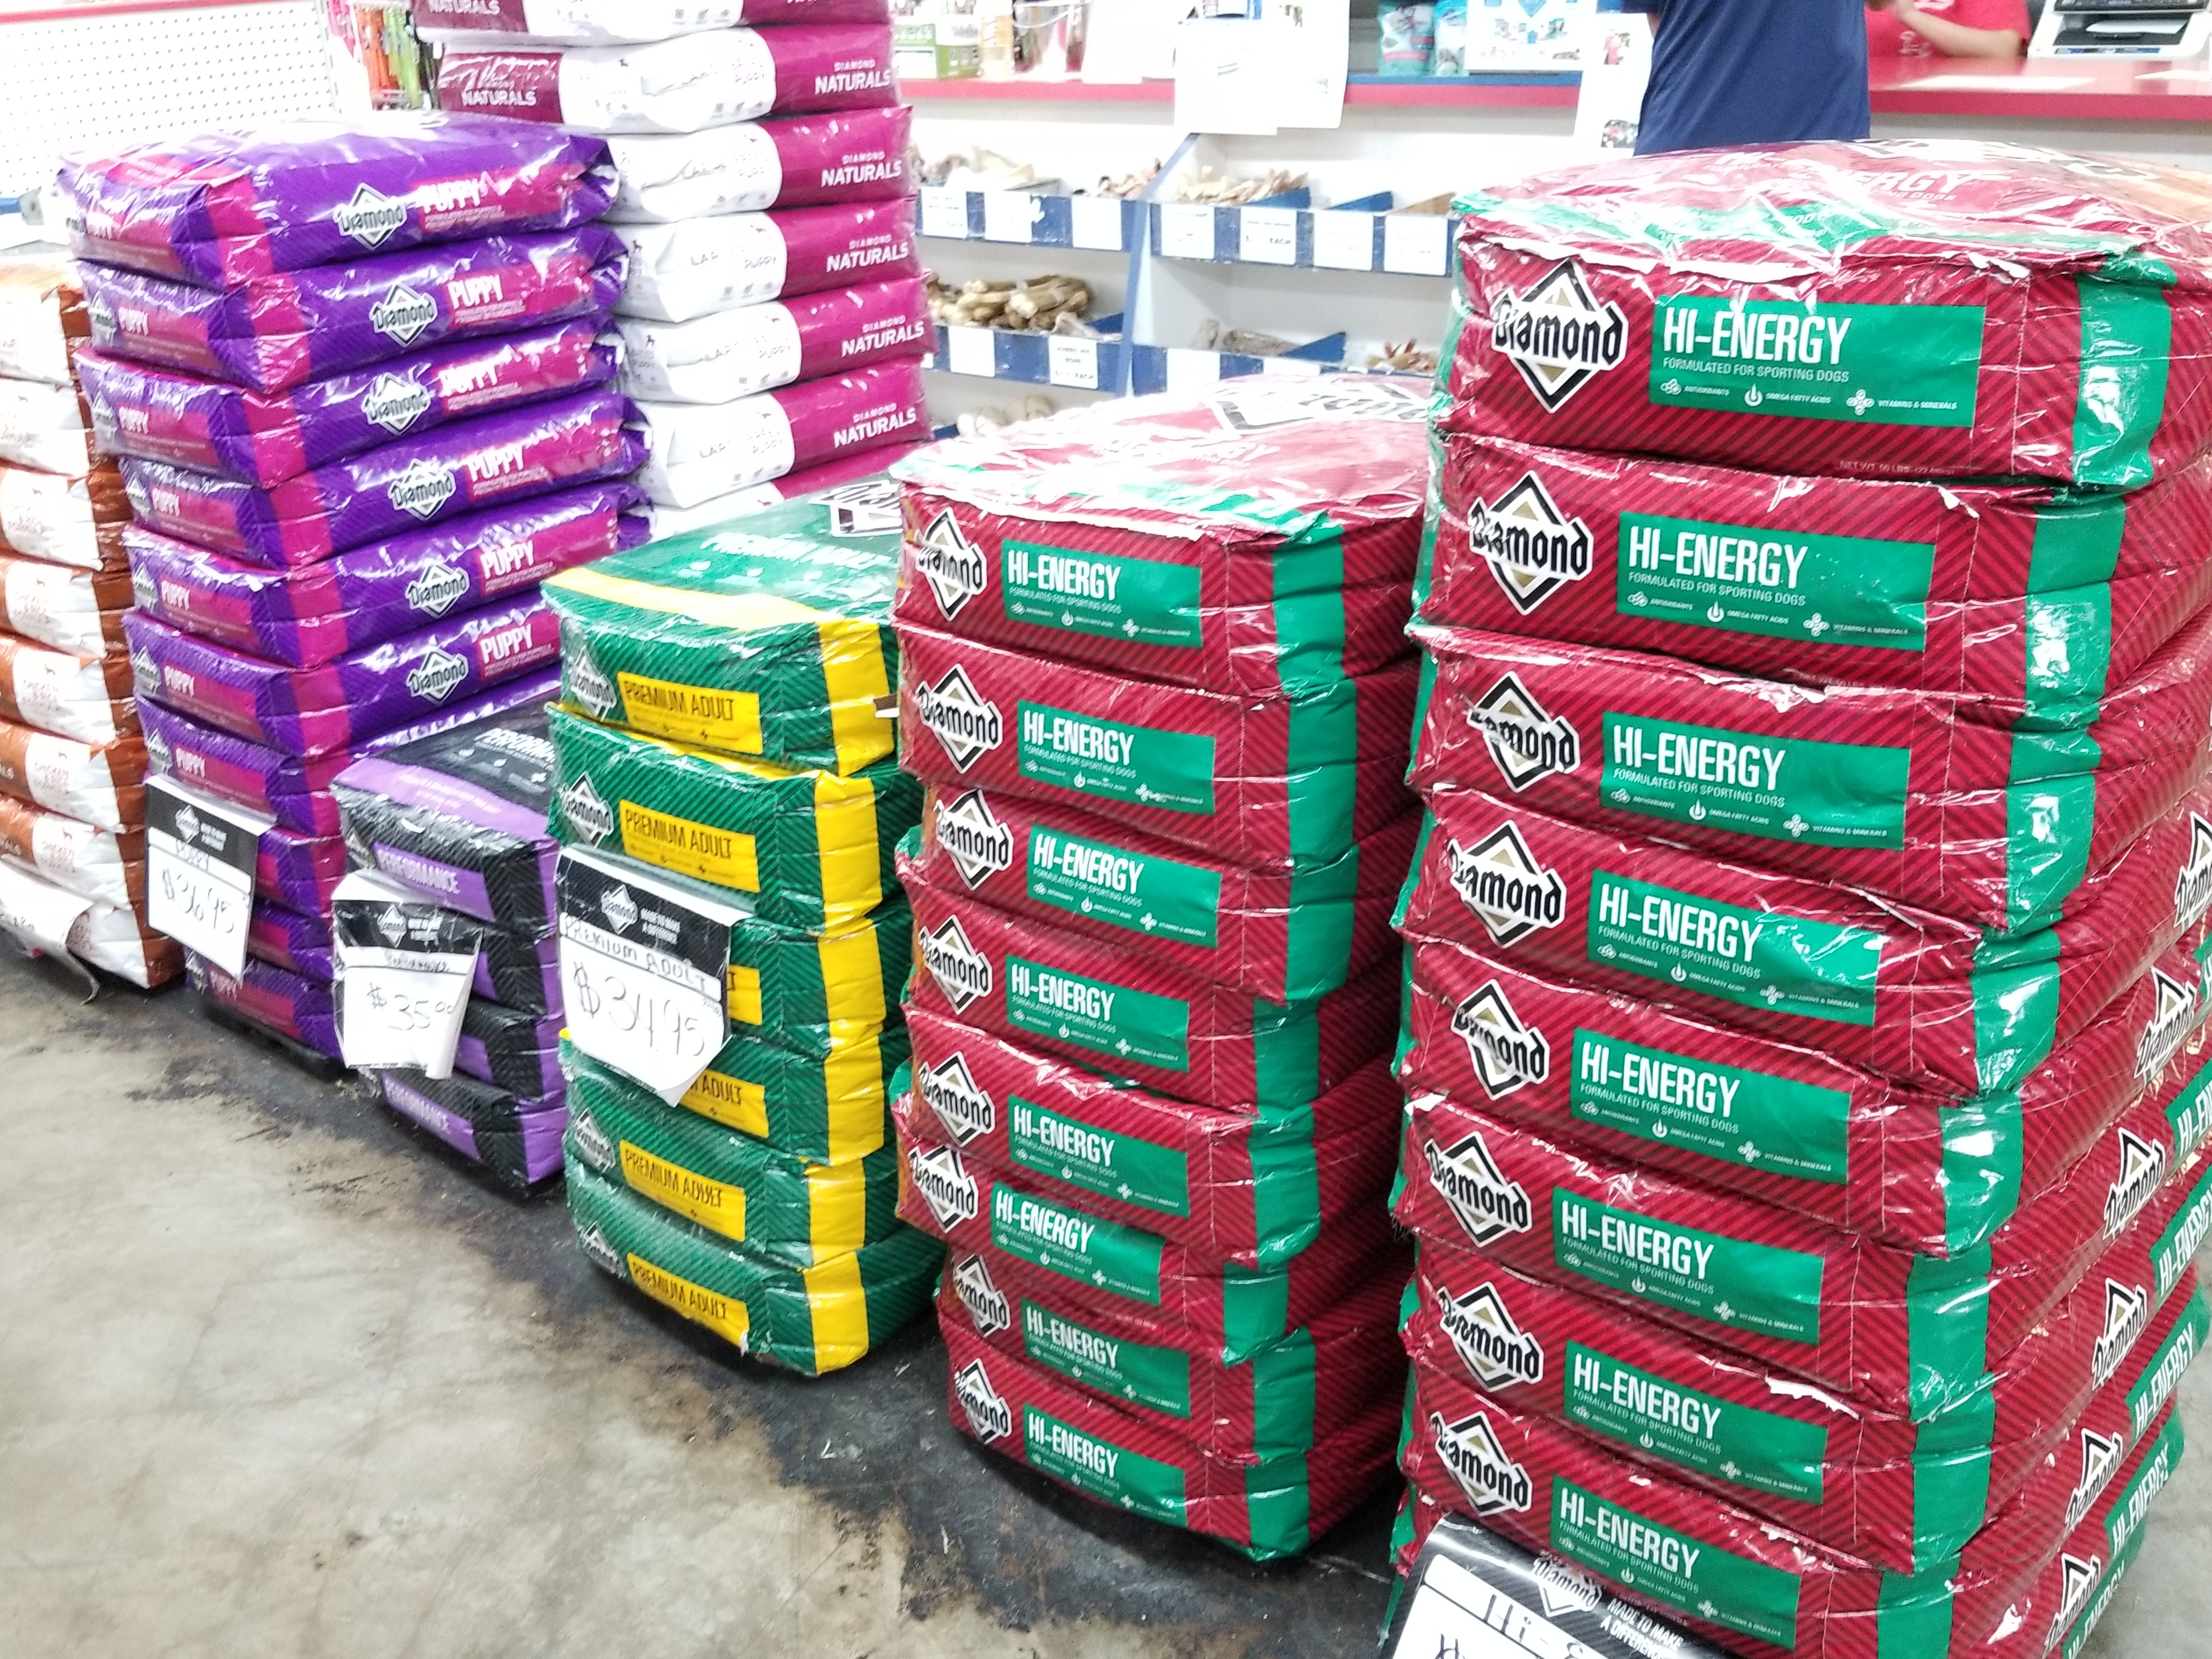 shells feed garden supply tampa florida pet food all life stages diamond best dog food